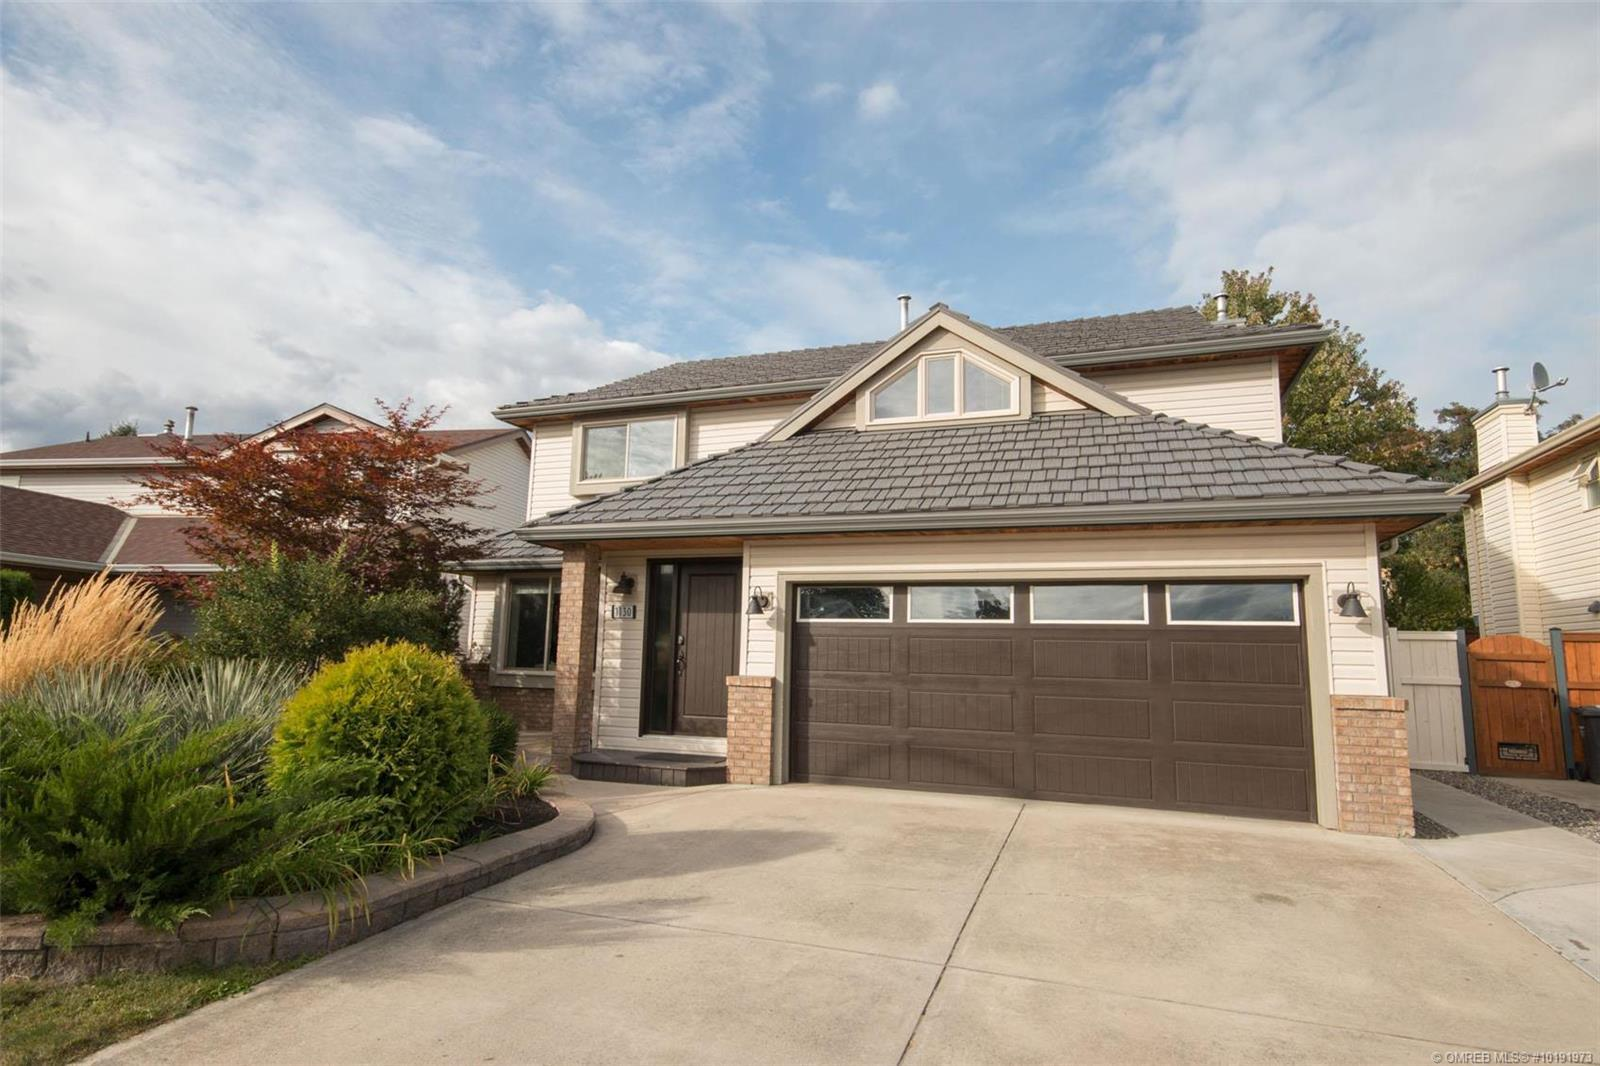 Removed: 1130 Wintergreen Crescent, Kelowna, BC - Removed on 2019-10-16 06:30:18